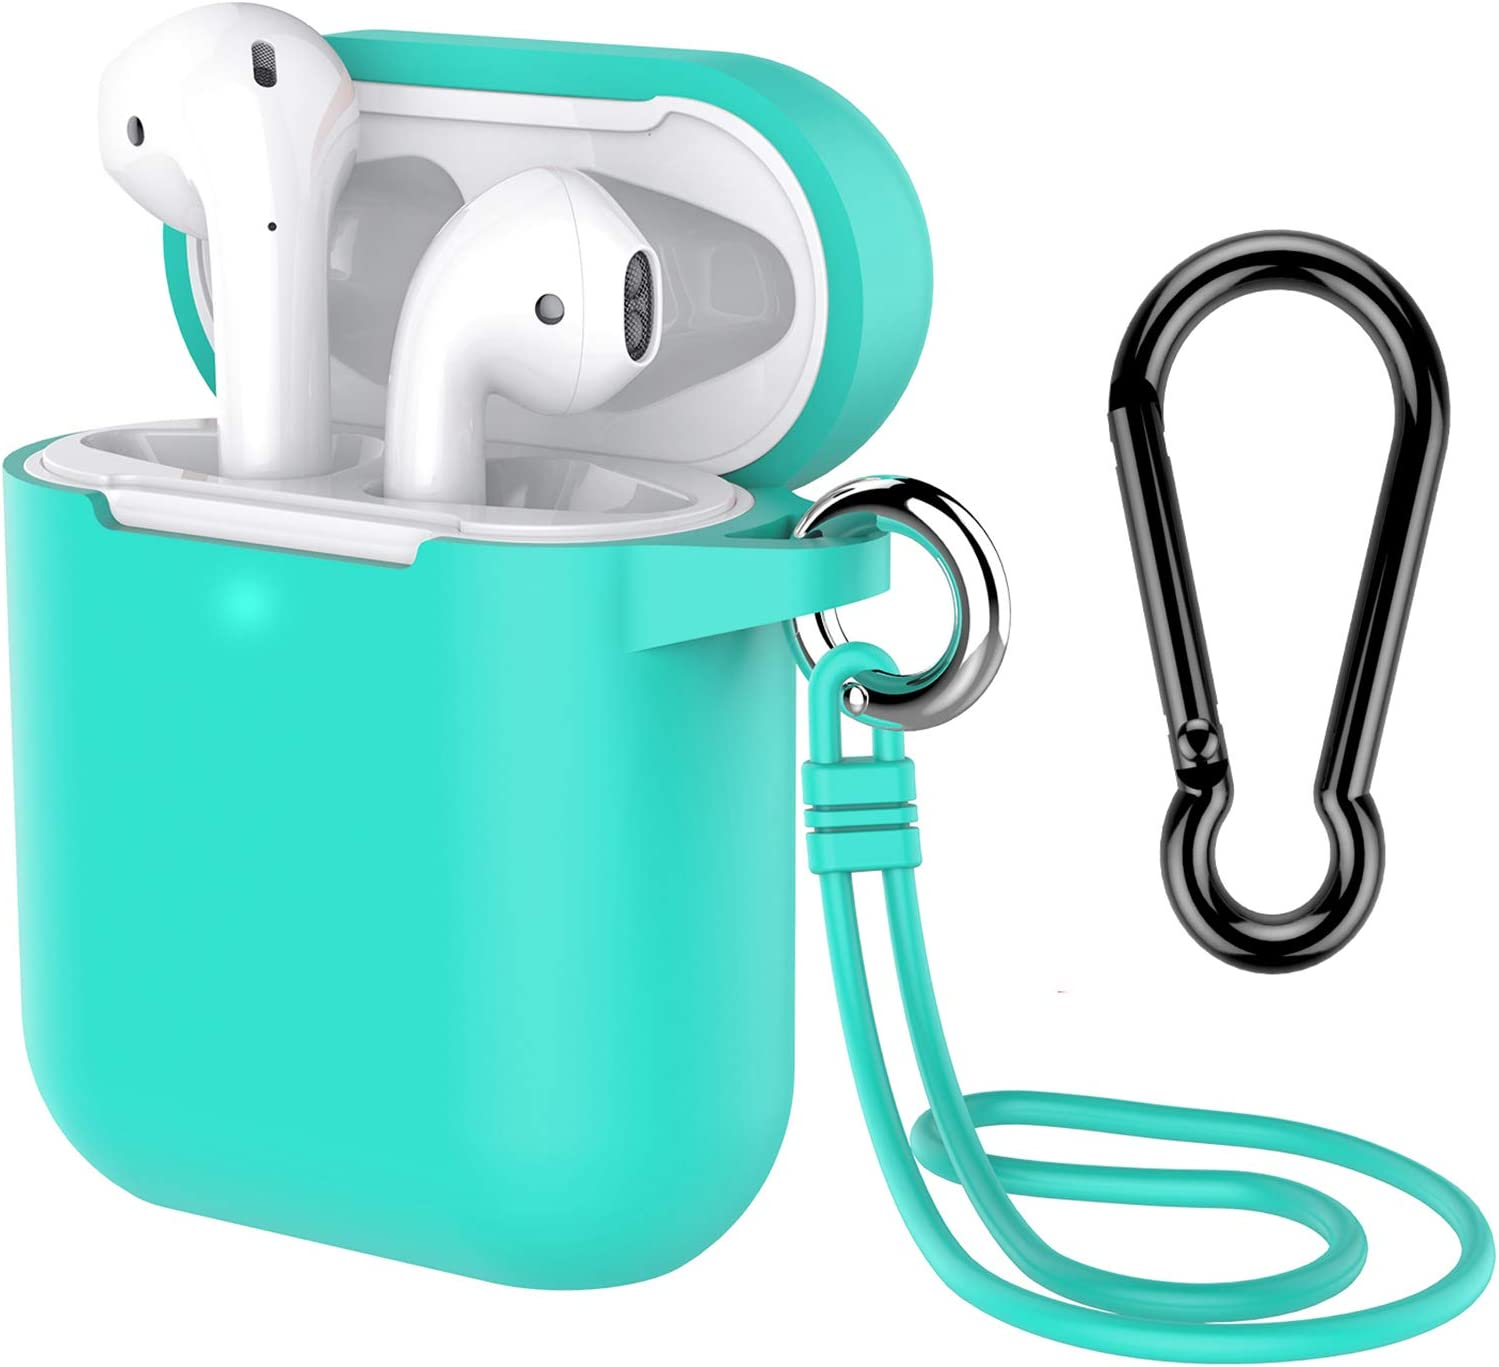 AirPods Case with Keychain, Coffea Silicone Protective Case with Stap for AirPods 2 & 1 [Front LED Visible] (Green)